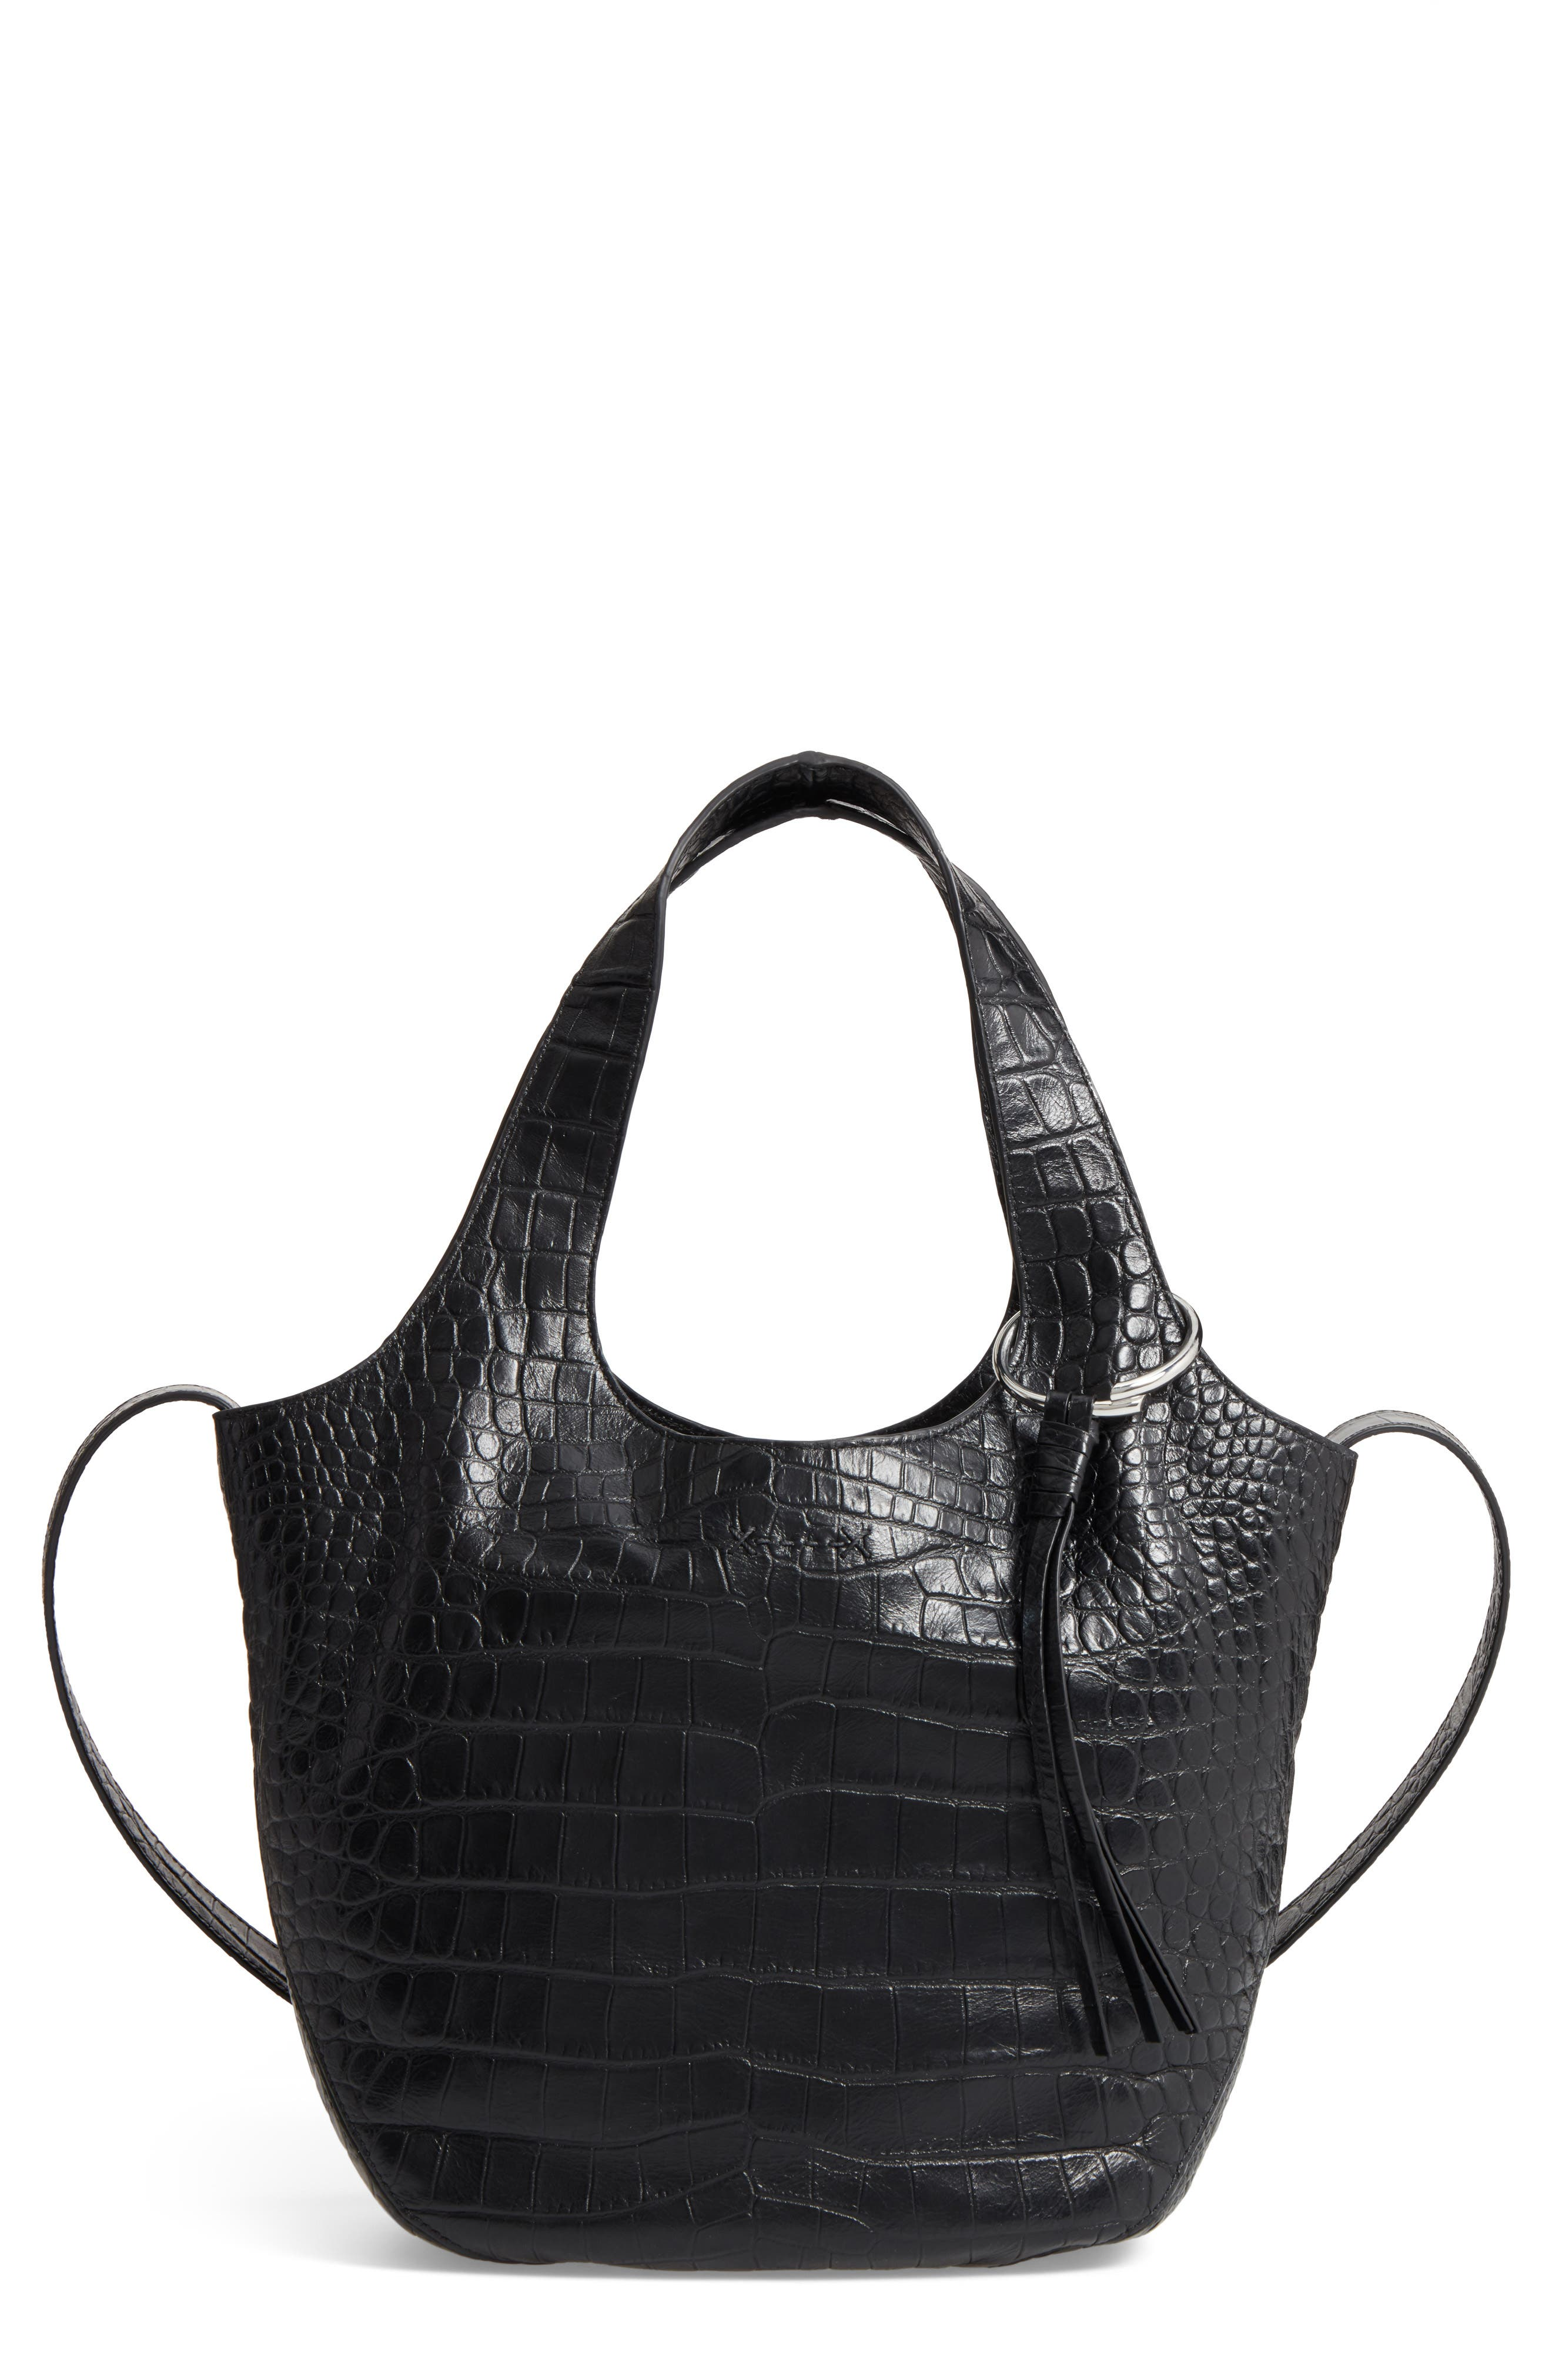 Alternate Image 1 Selected - Elizabeth and James Small Finley Embossed Leather Shopper